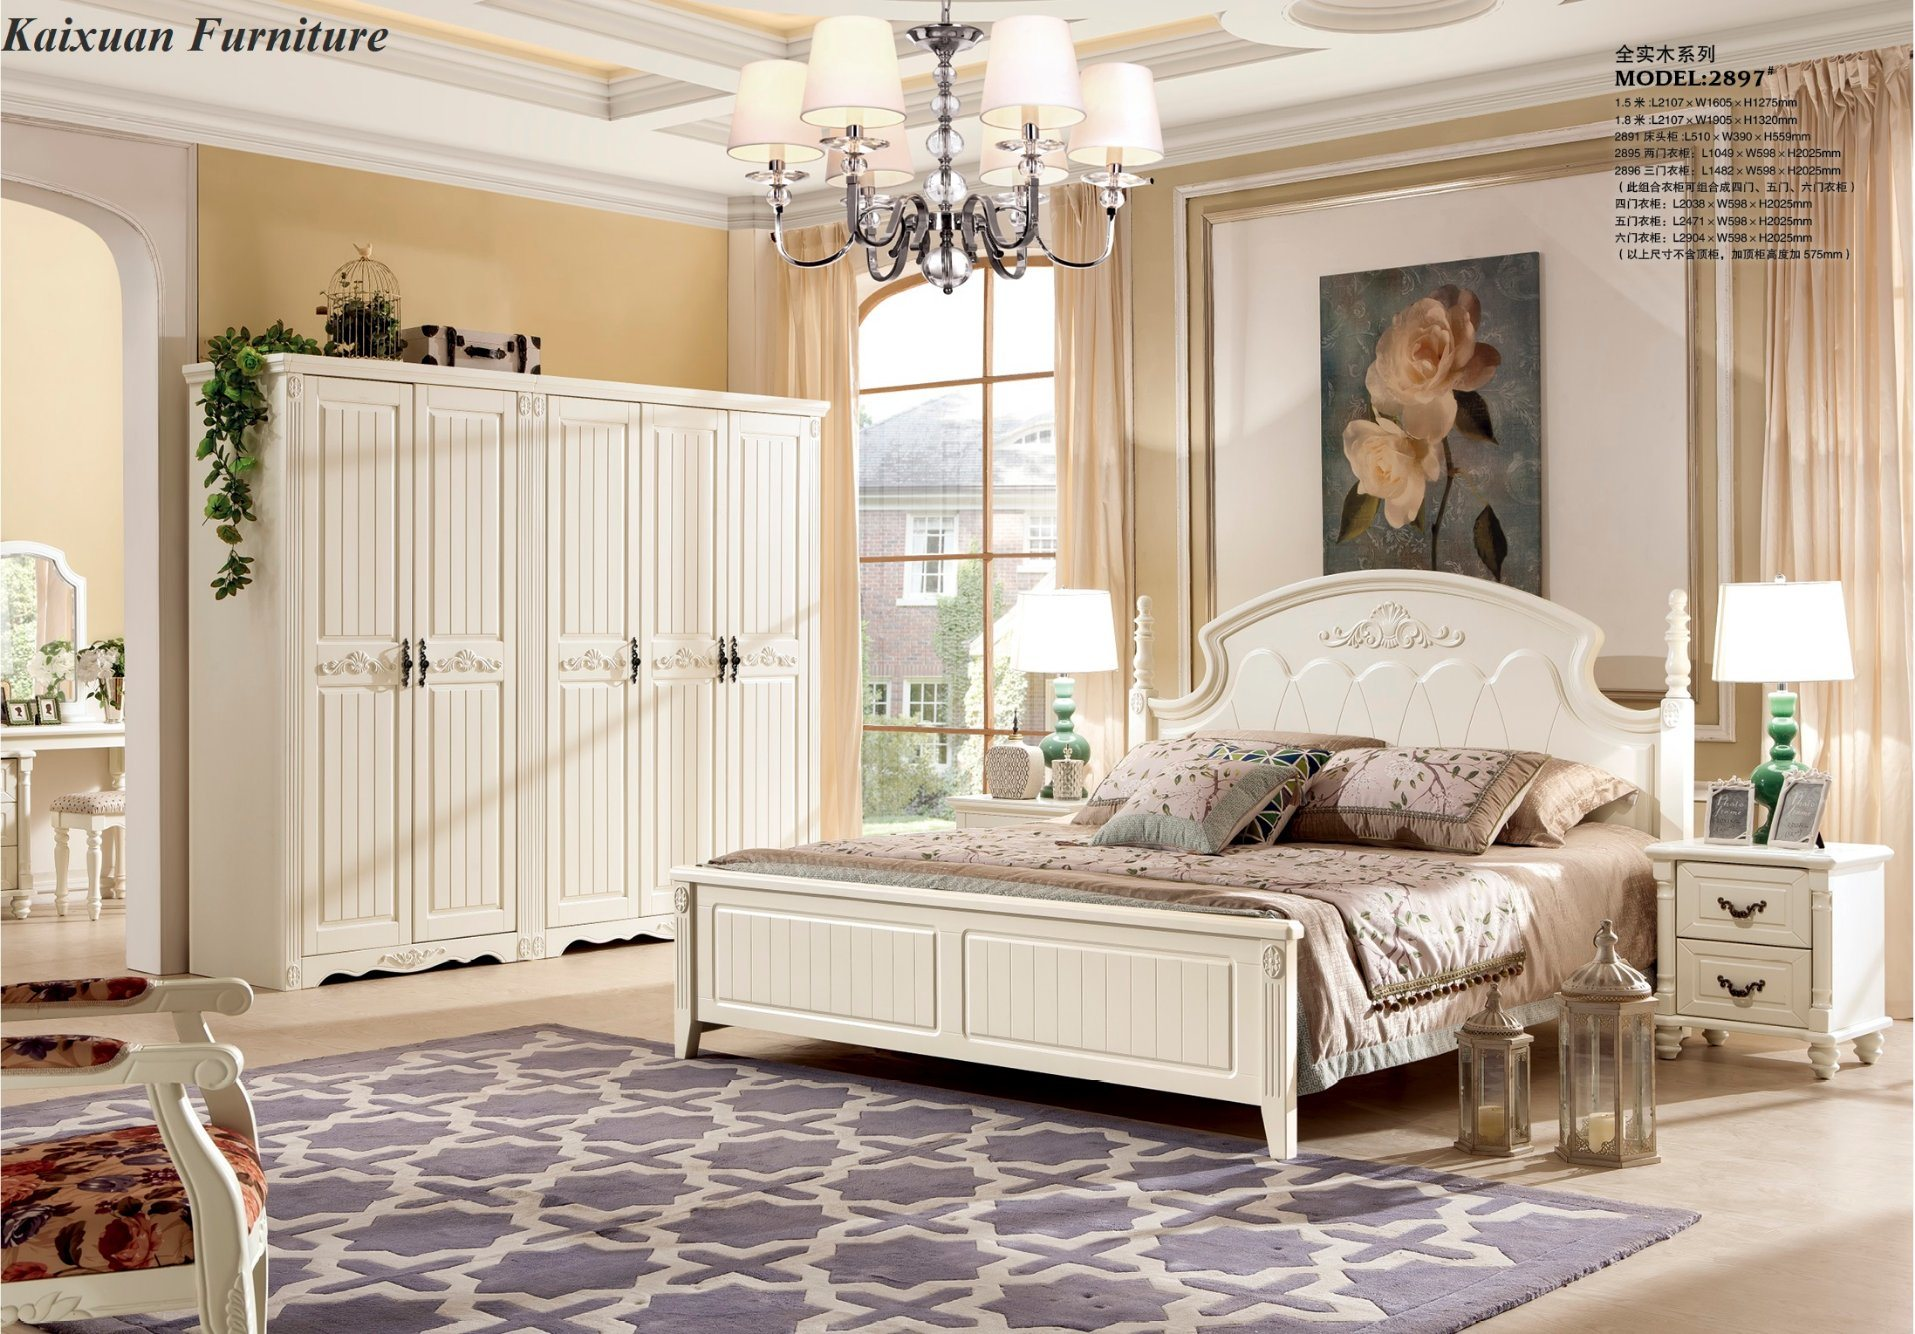 China Foshan Antique Solid Wood Bedroom Furniture Set In King Size